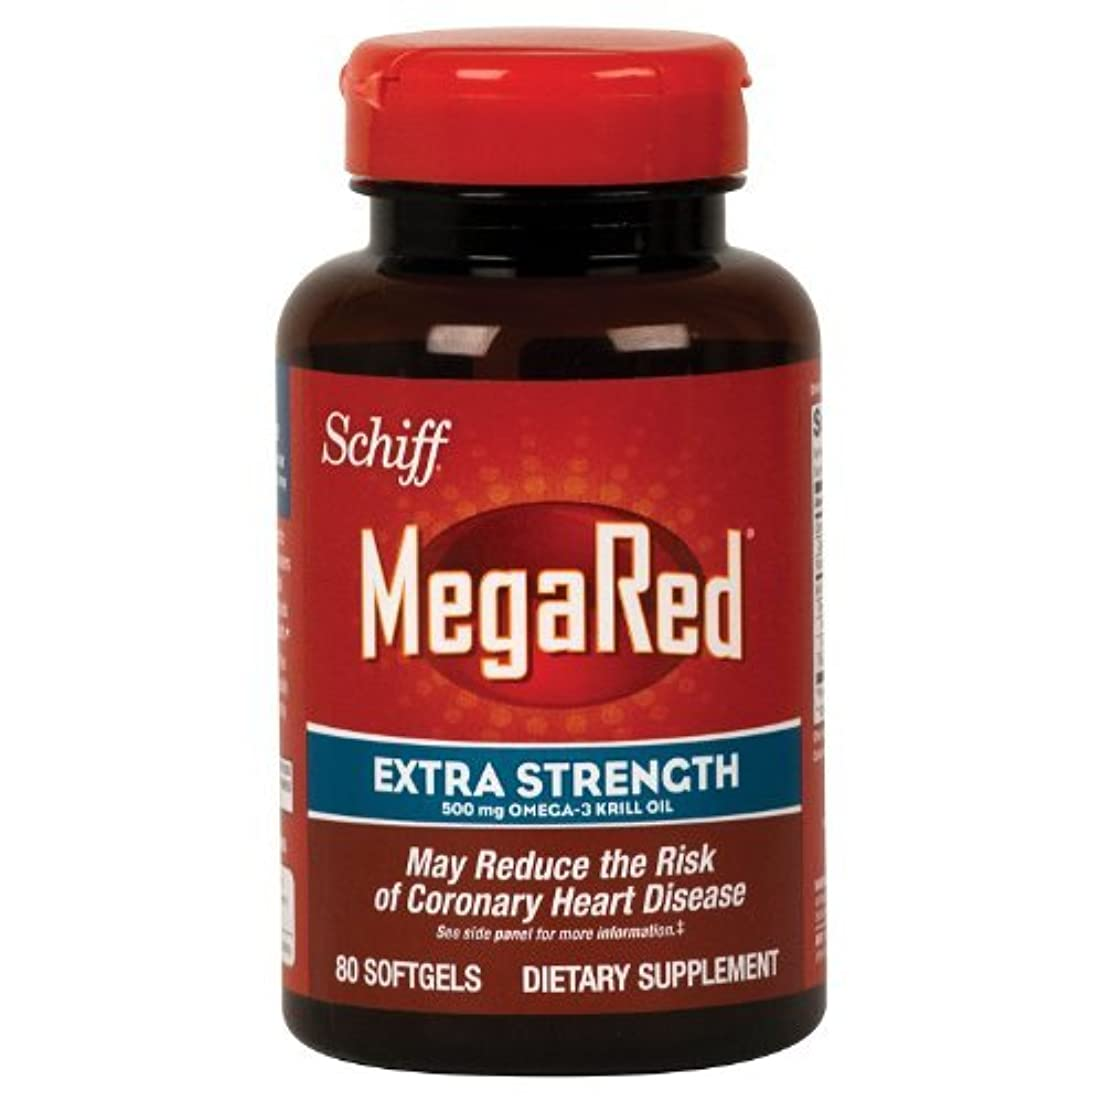 リラックスしたスタンドアクセスできないSchiff Megared Extra Strength 500mg Omega-3 Krill Oil - 80 Softgels by Simply Right [並行輸入品]